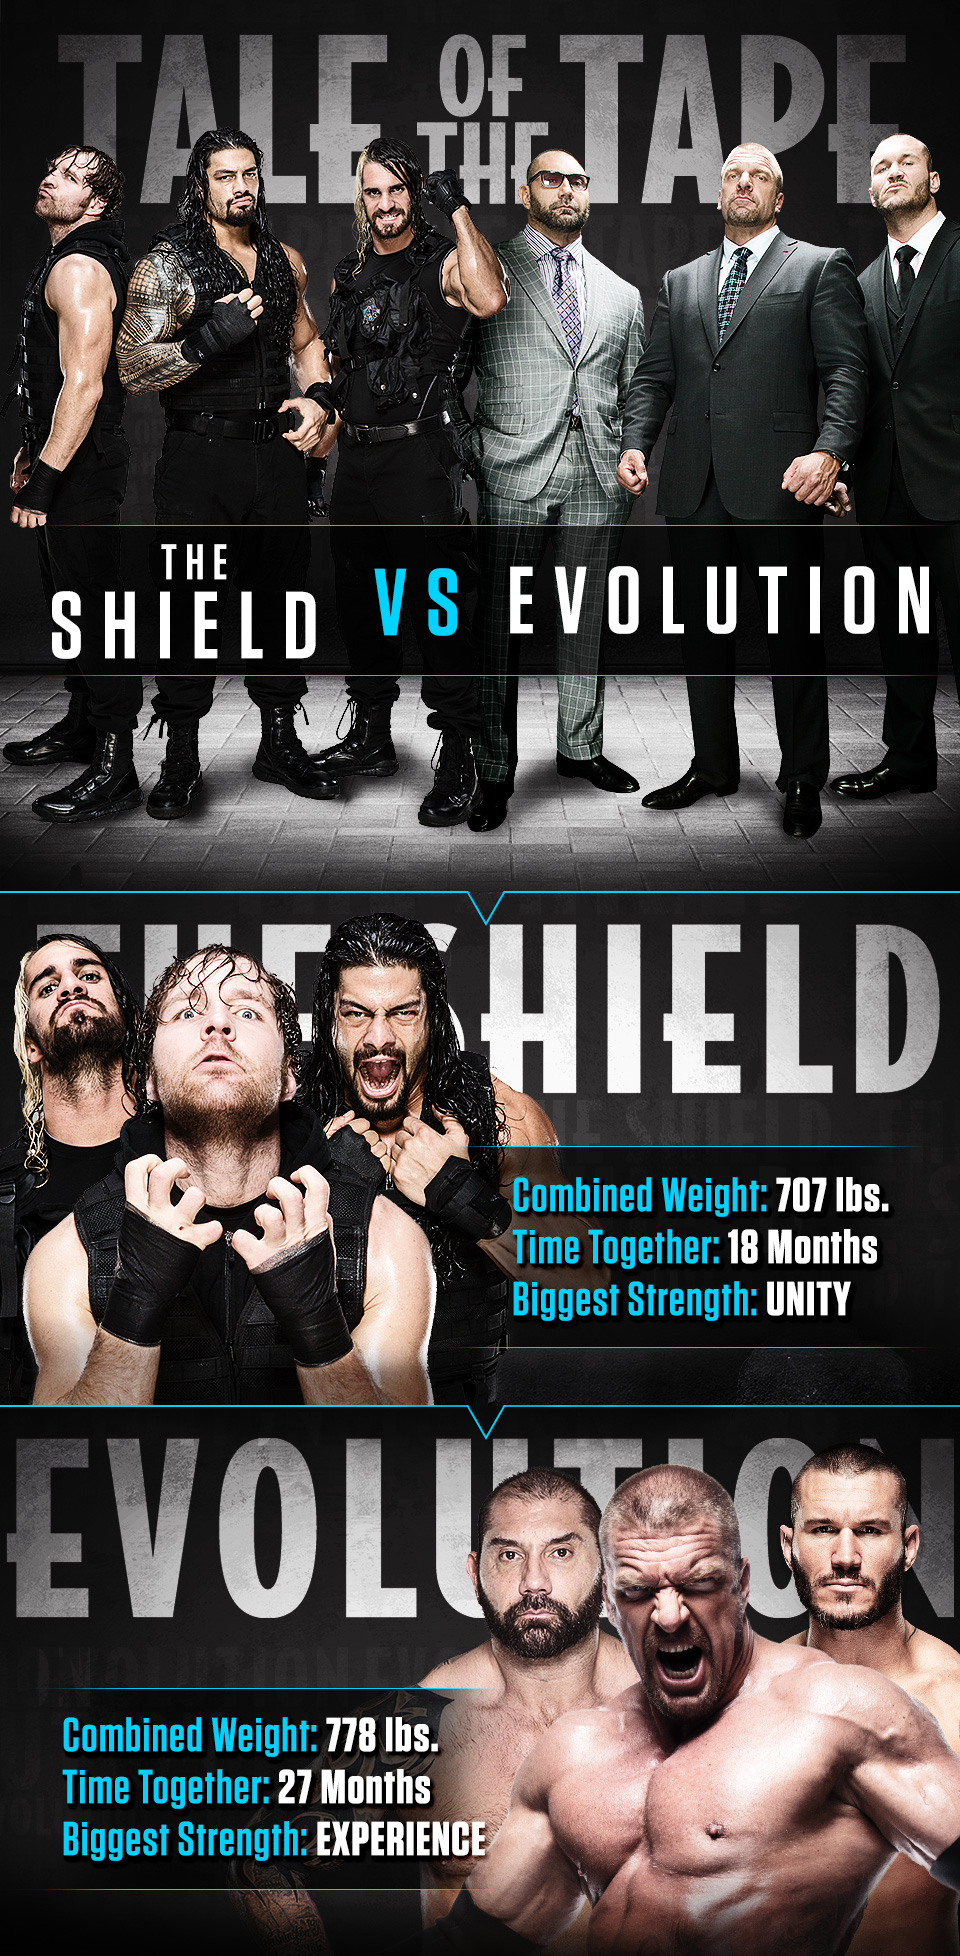 20140601_TaleofTape_ShieldEvolution.jpg